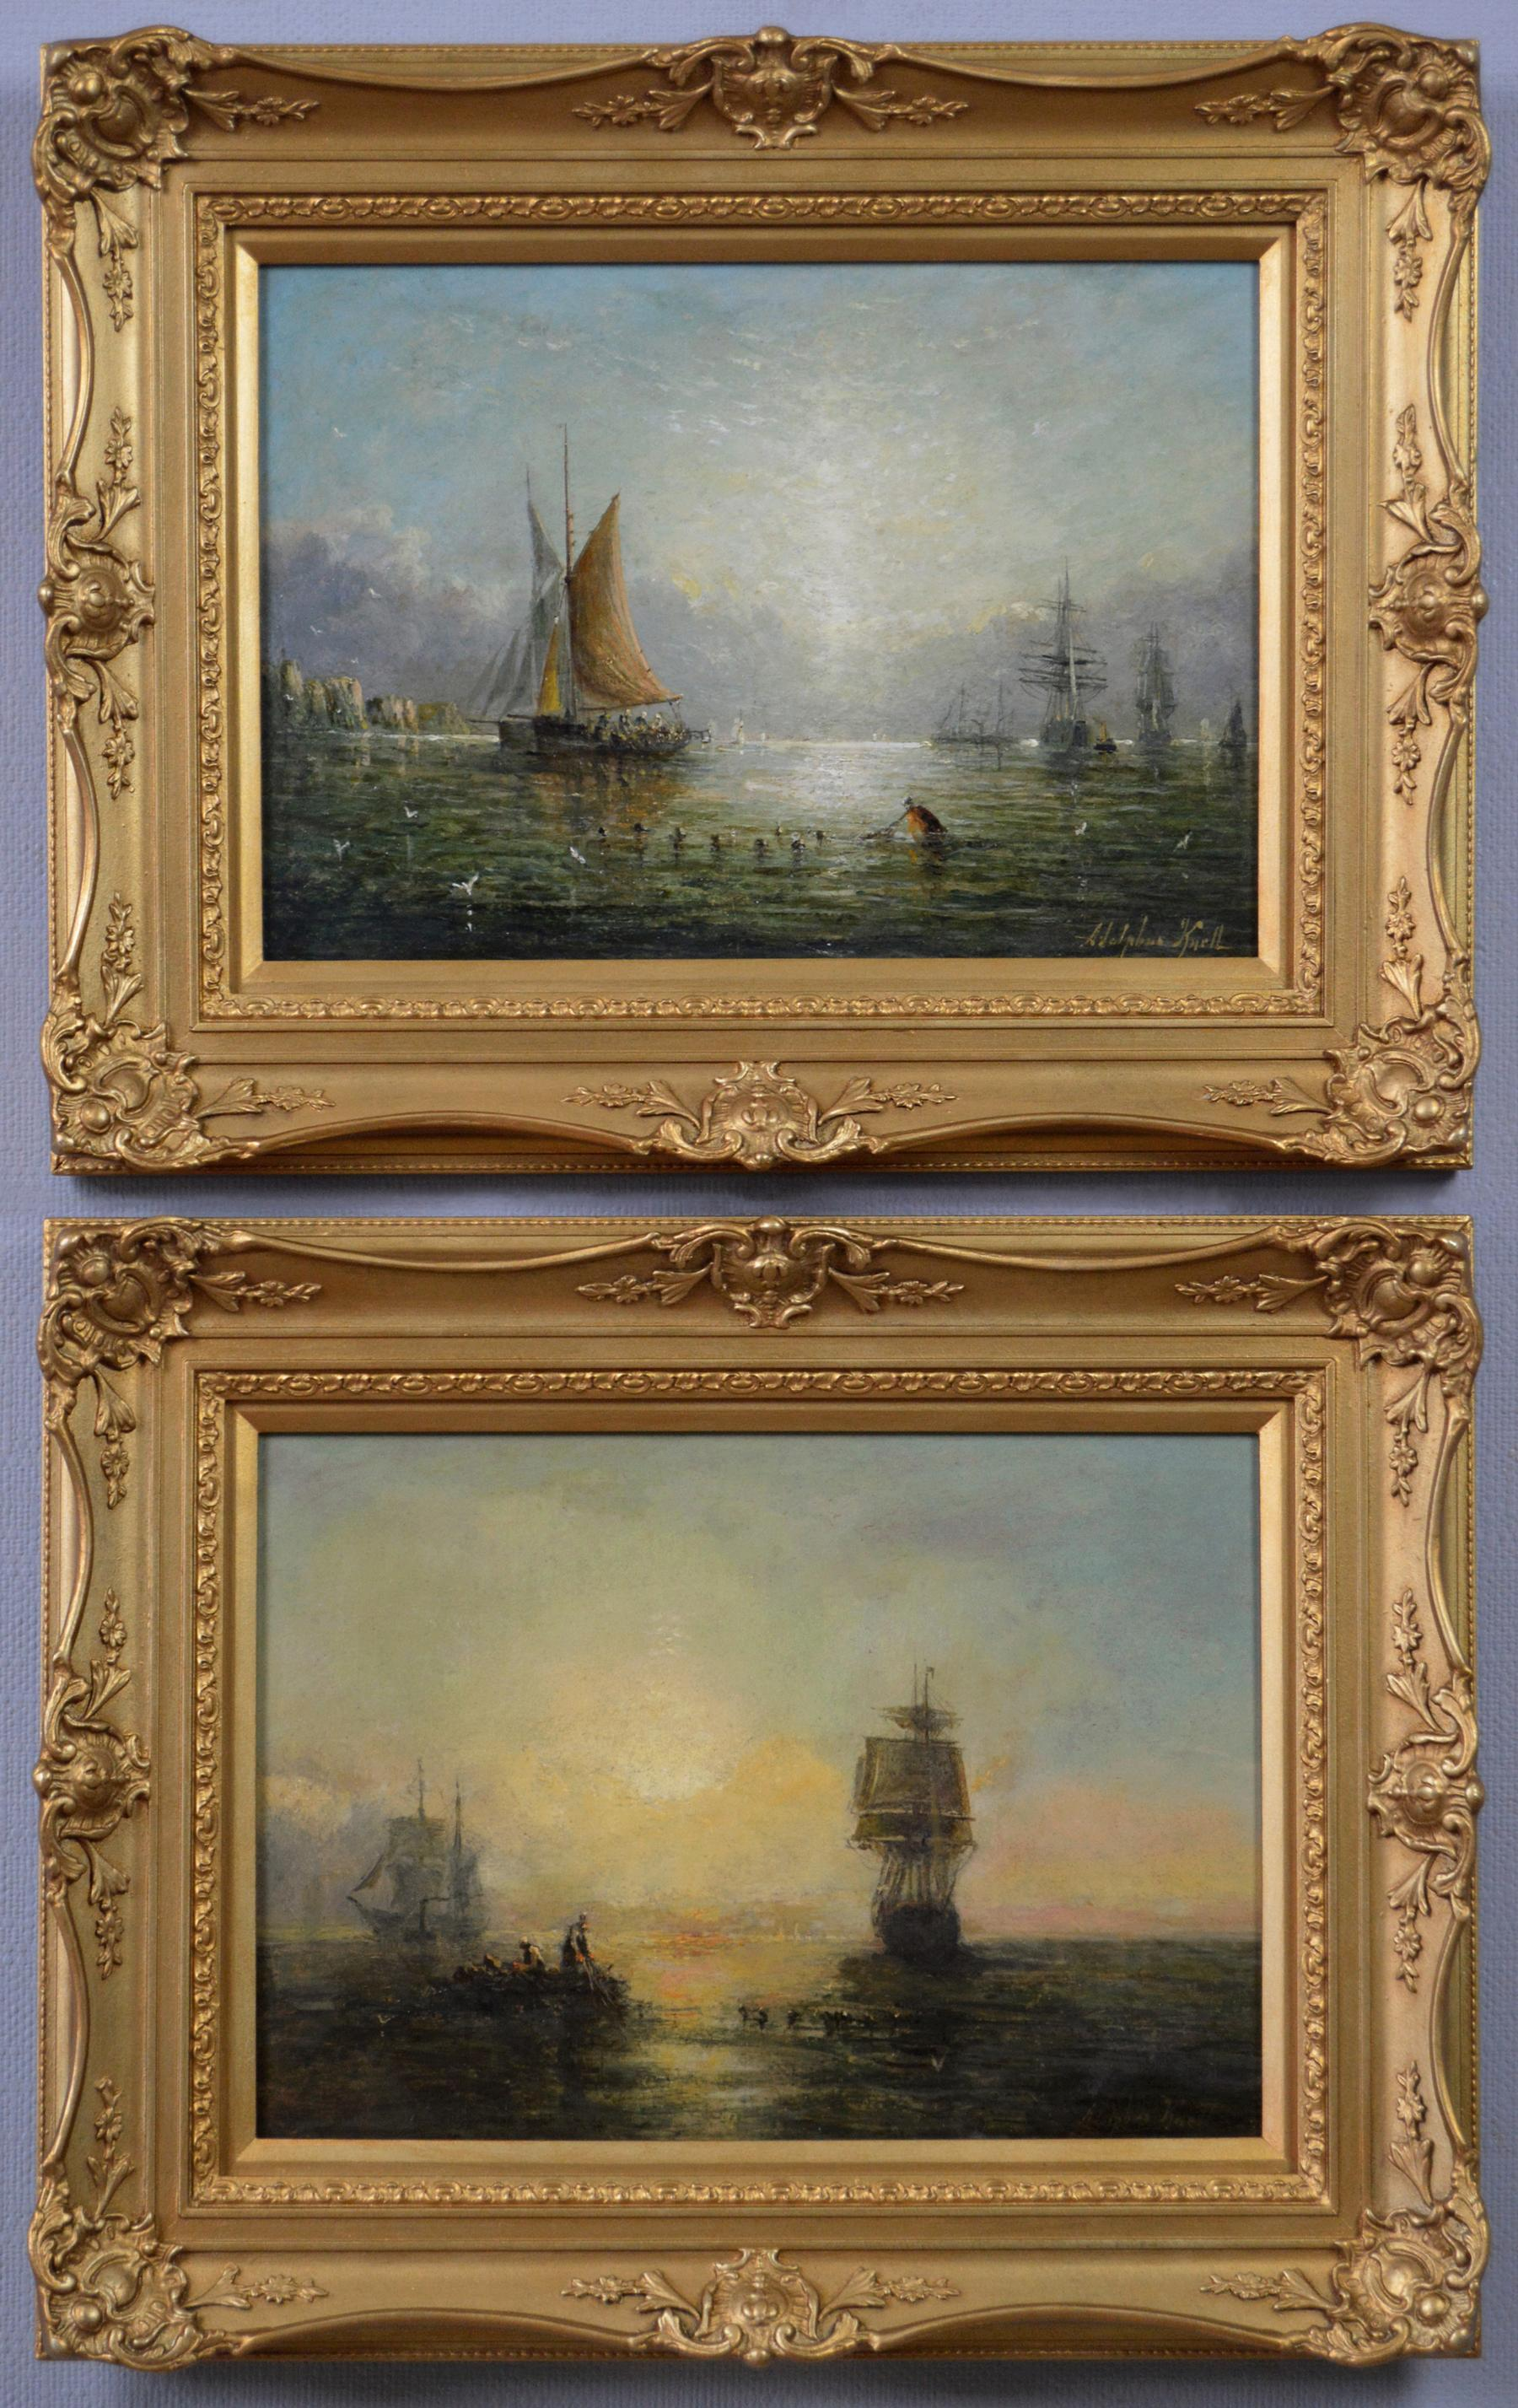 Pair of 19th Century seascape oil paintings of ships & fishing boats